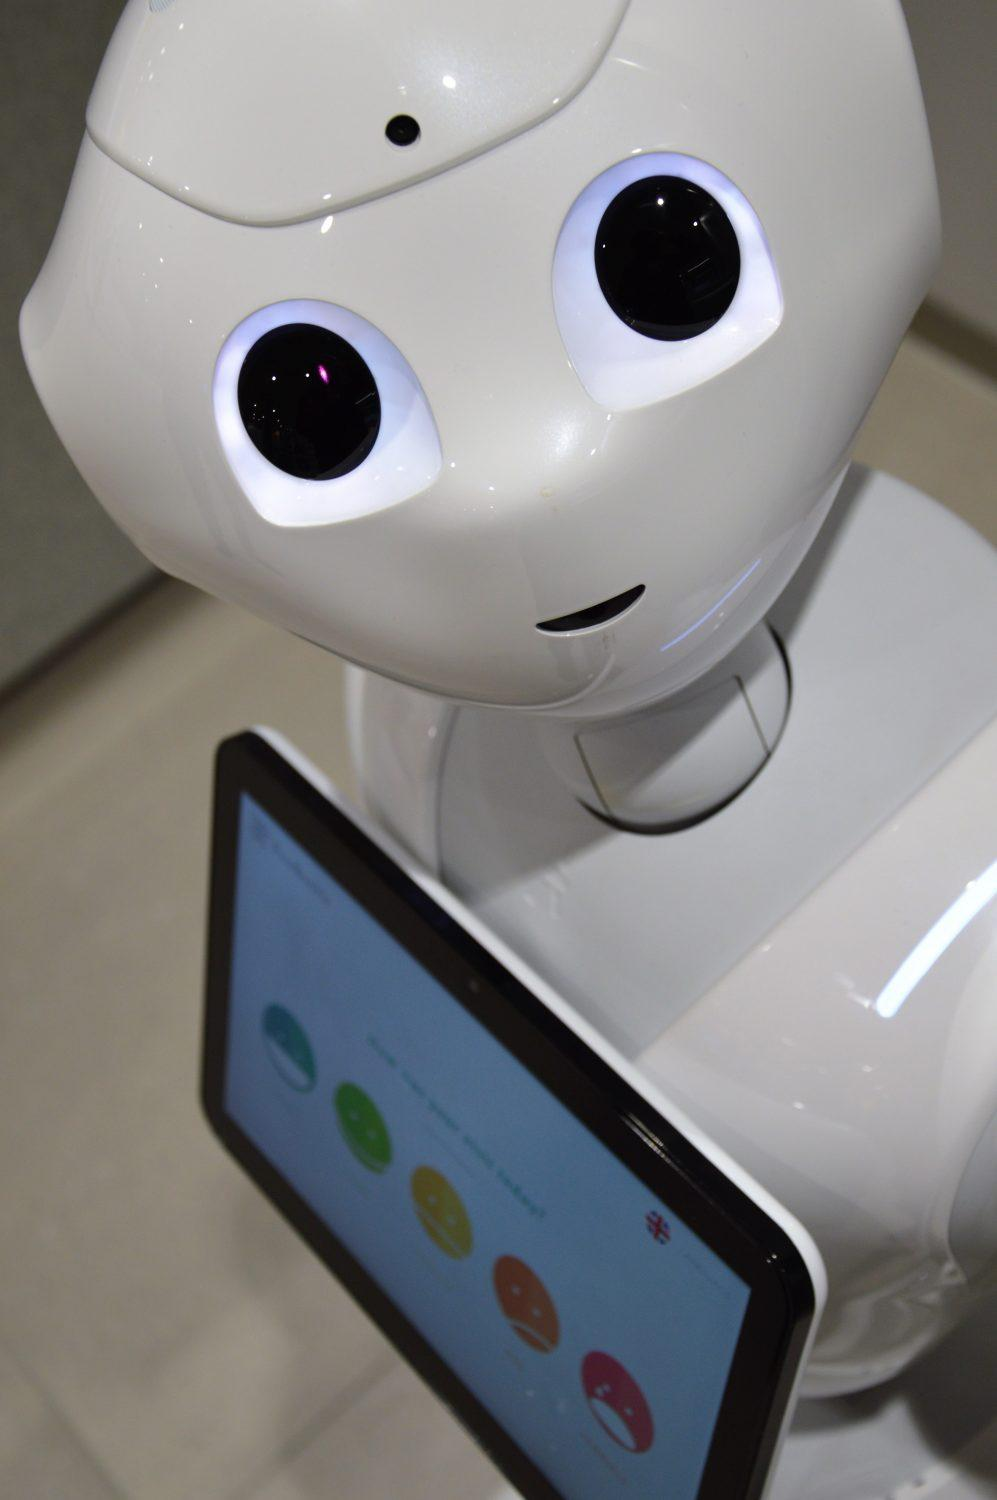 Pepper Robot Kalasatama Feedbackly